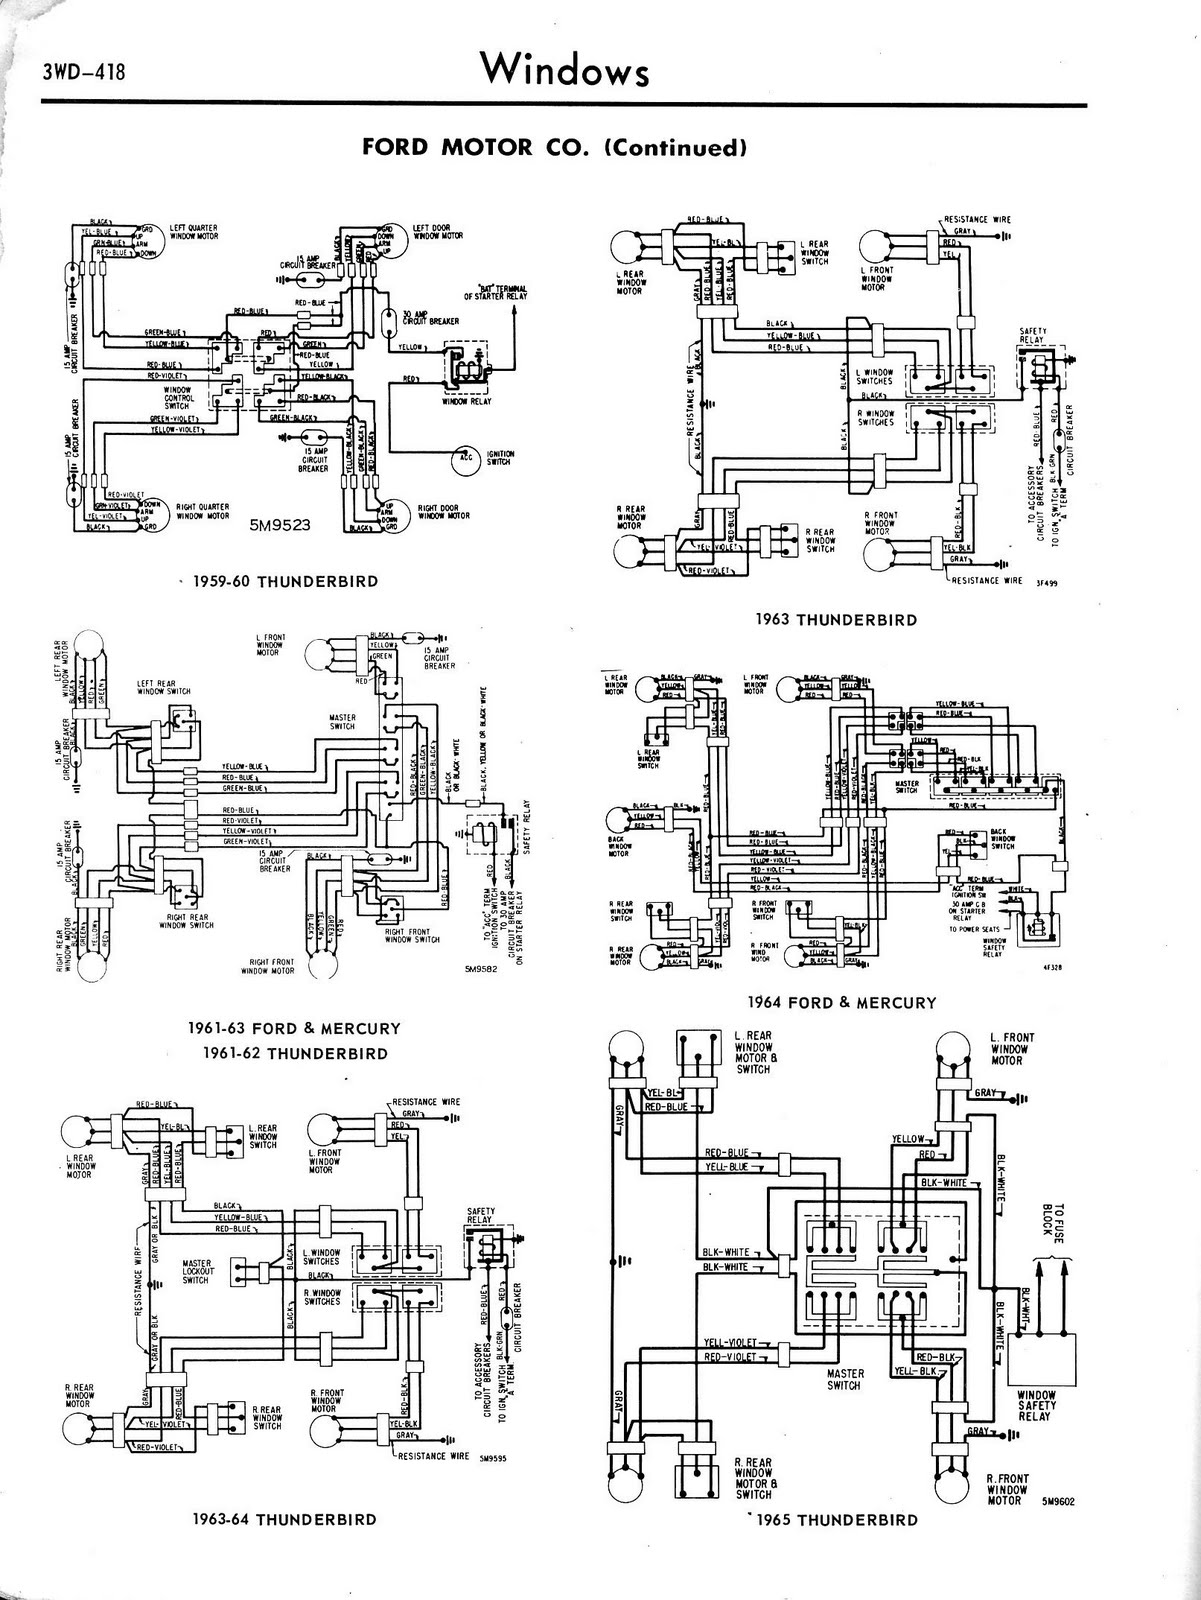 1965+Ford+Thunderbird+Window+Controls+Diagram 1965 thunderbird wiring diagram 1965 ford thunderbird wiring 1955 thunderbird wiring diagram at gsmx.co